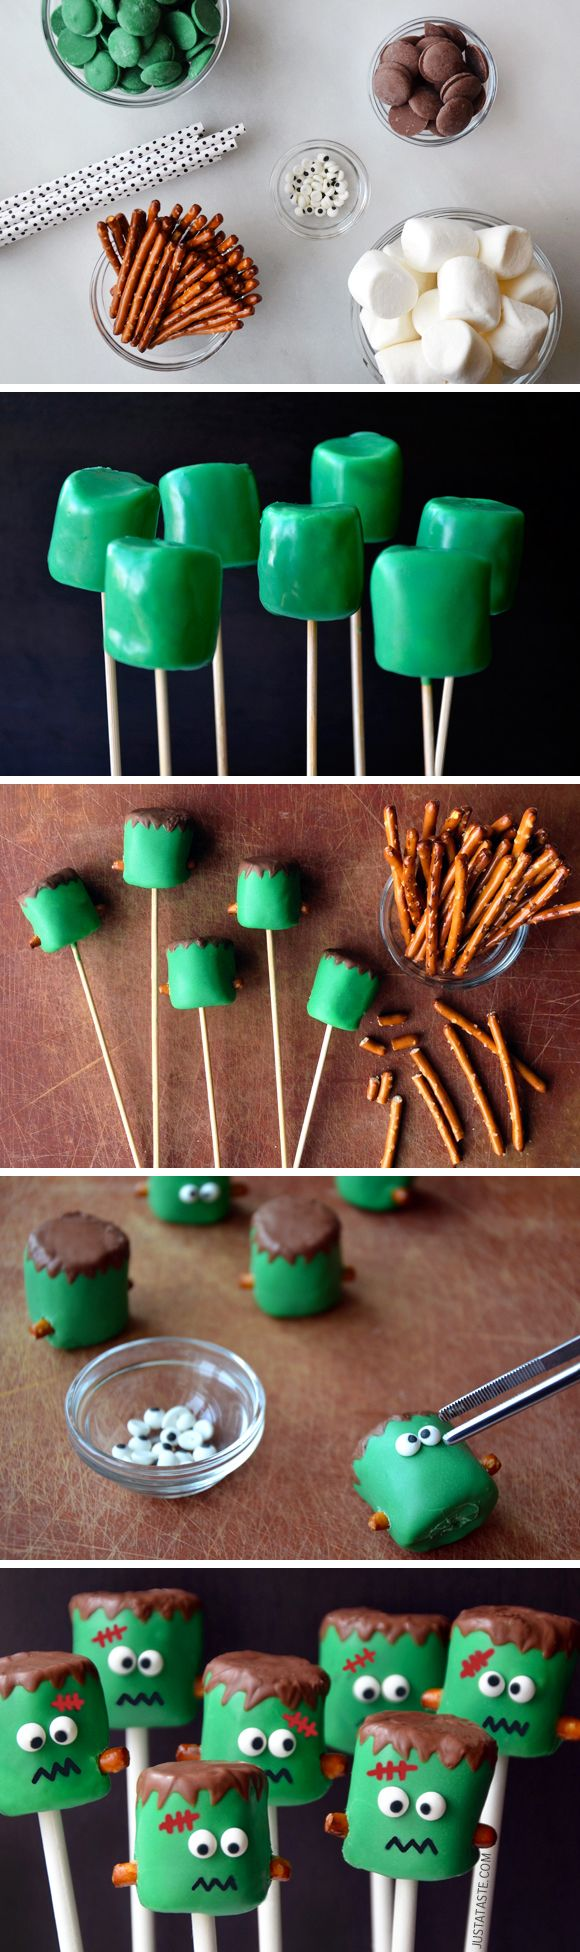 Frankenstein Marshmallow Pops from justataste.com  - cute for Halloween.